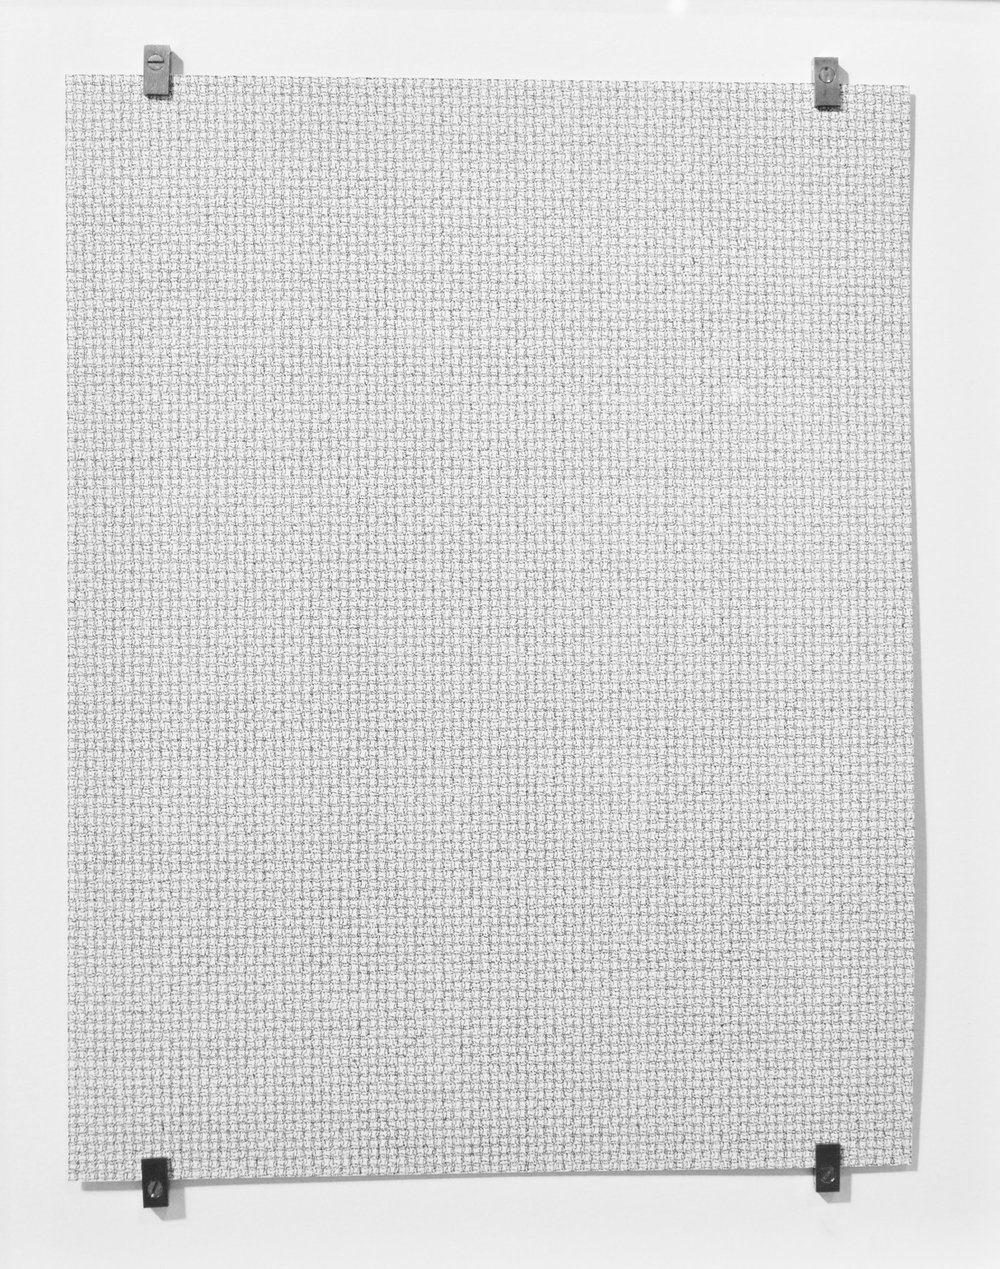 completely fucked letter - 42,588,  2017, ink on paper, double sided, 11 x 8.5 in. (Photo courtesy Olga Korper Gallery © 2017 Olga Korper Gallery)